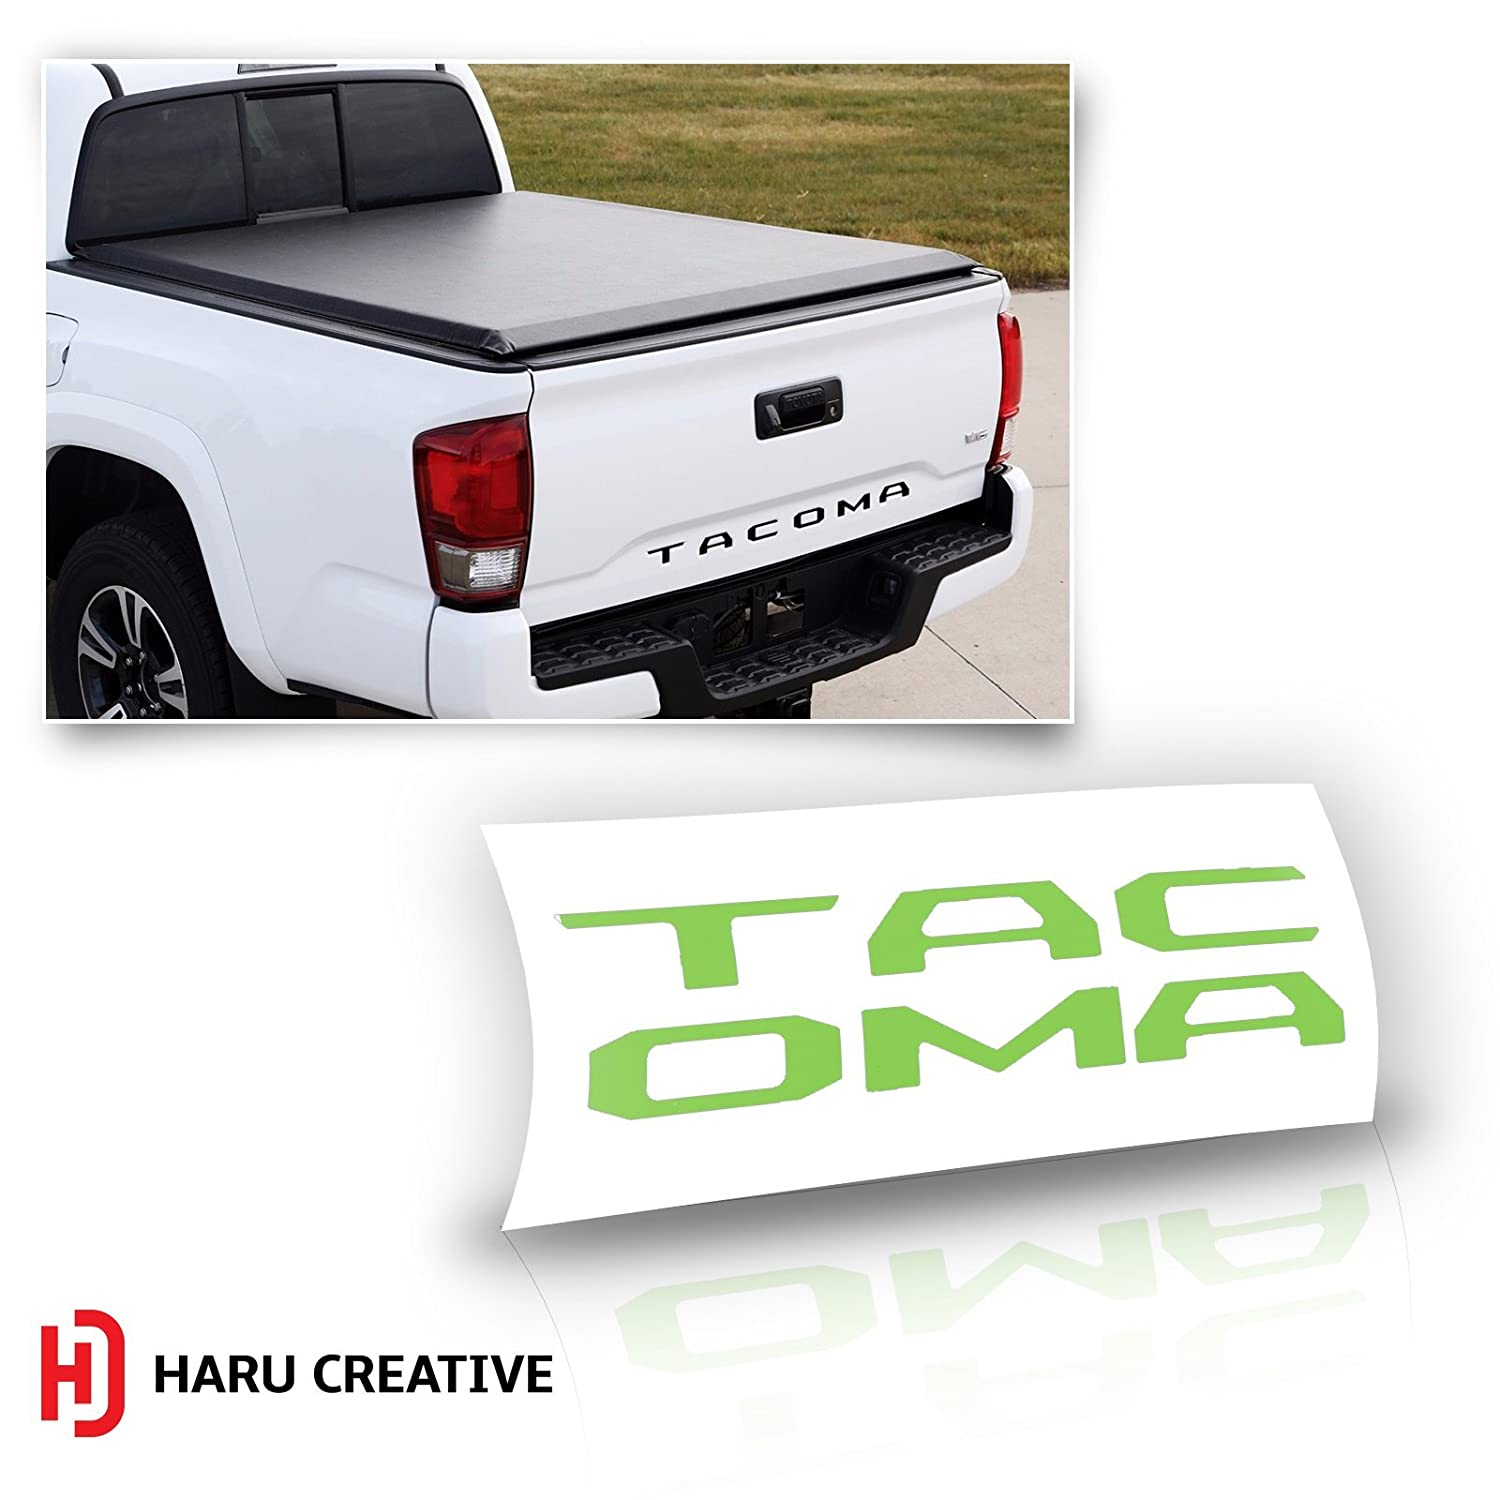 Gloss Green Haru Creative Rear Trunk Tailgate Letter Insert Decal Compatible with and Fits Toyota Tacoma 2016 2017 2018 2019